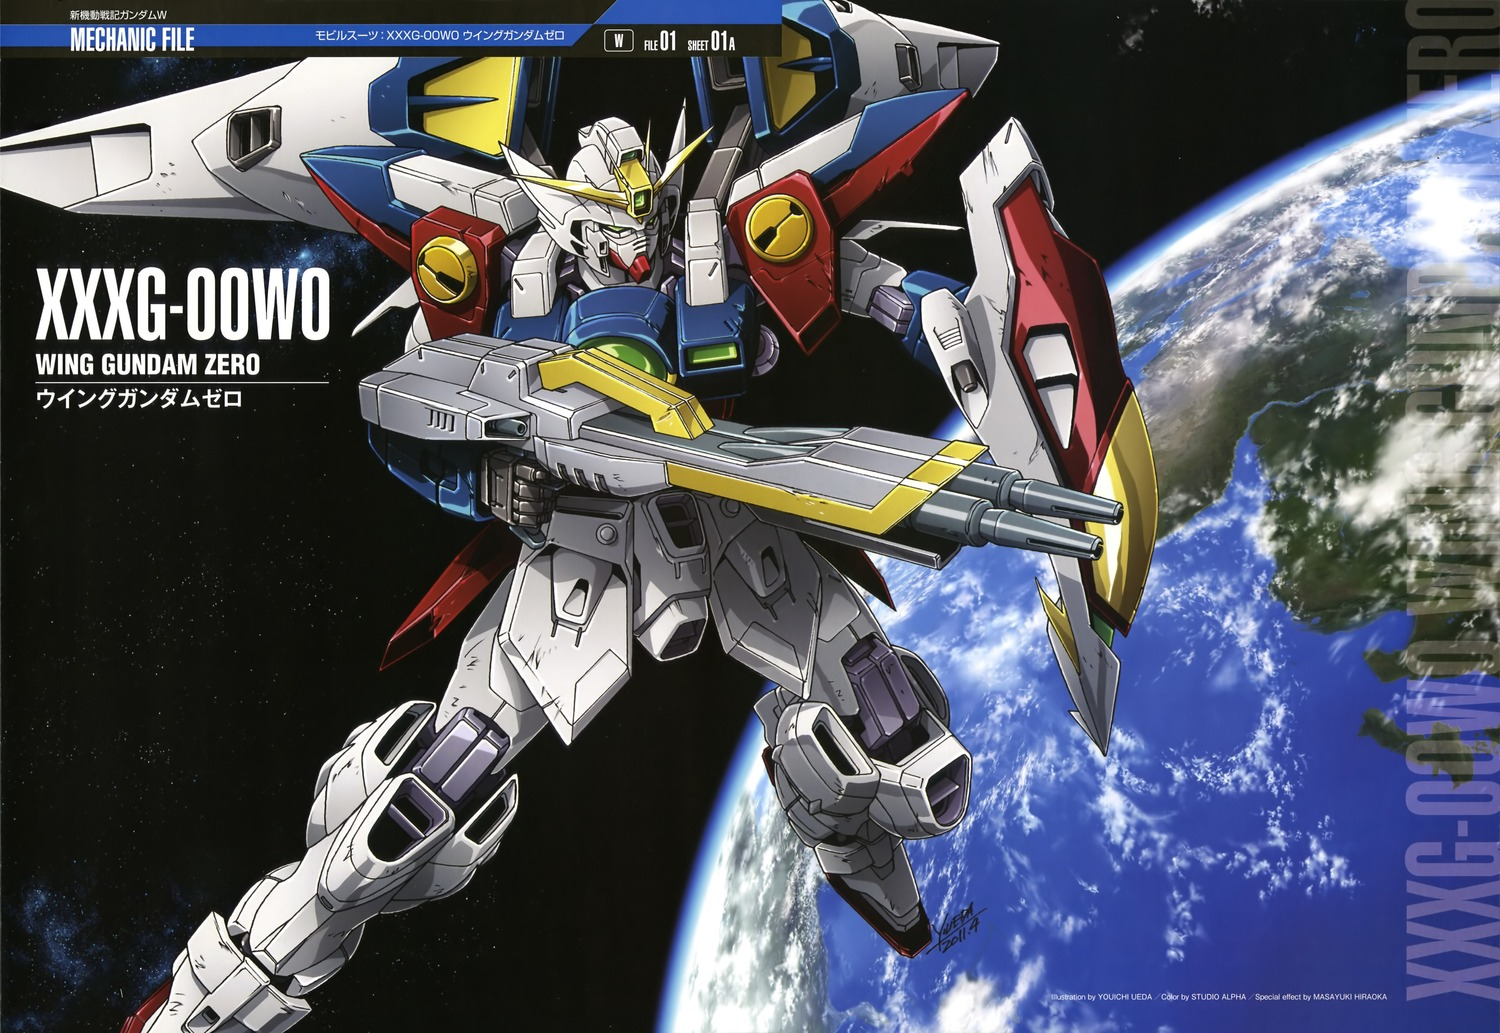 mobile suit gundam wing wallpapers plamo hub